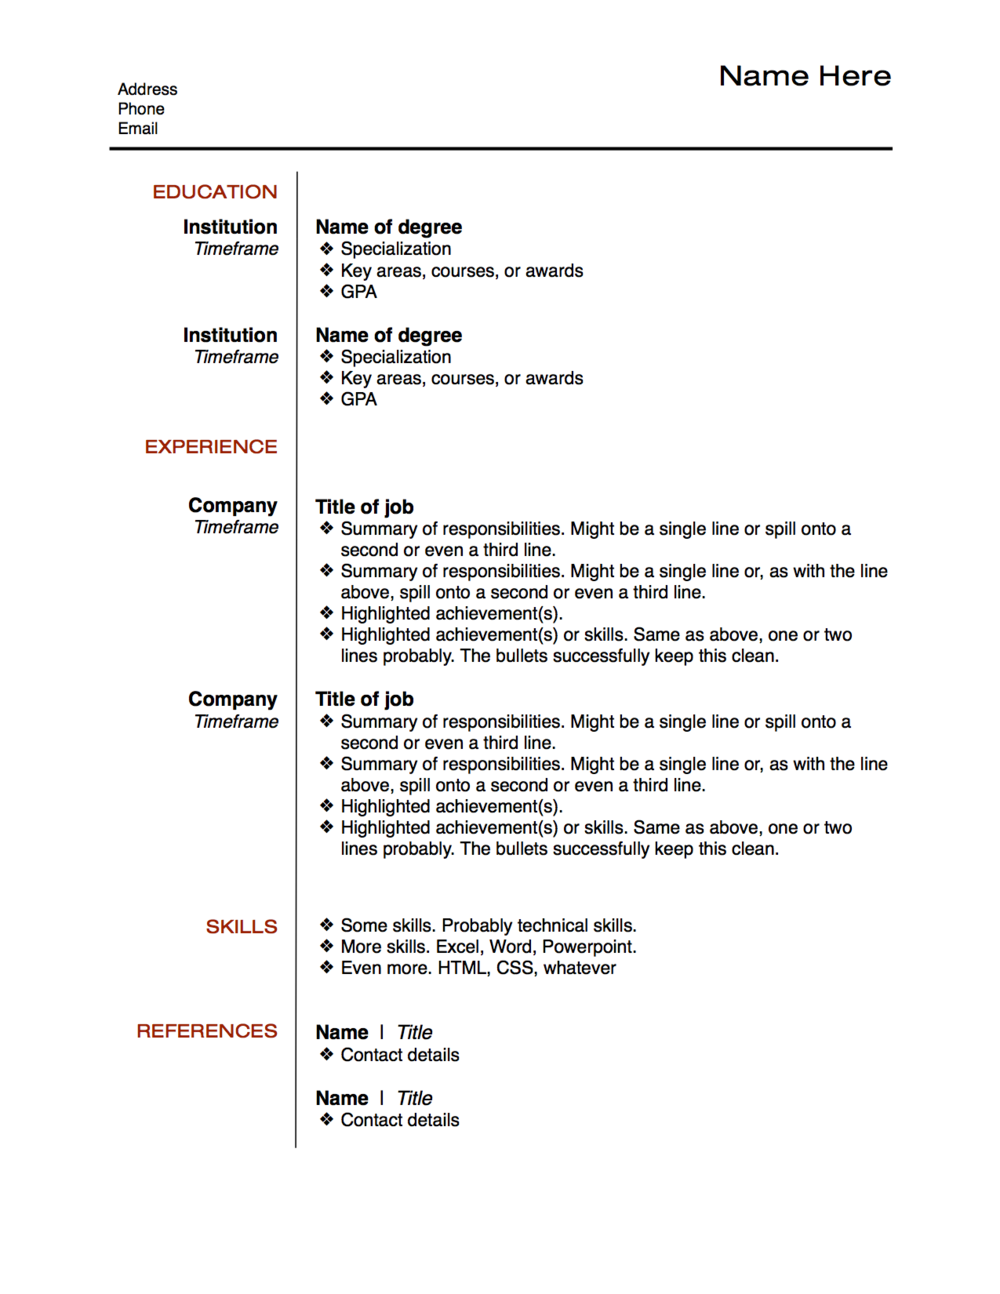 cv layout character fonts personal details cv template profile documents